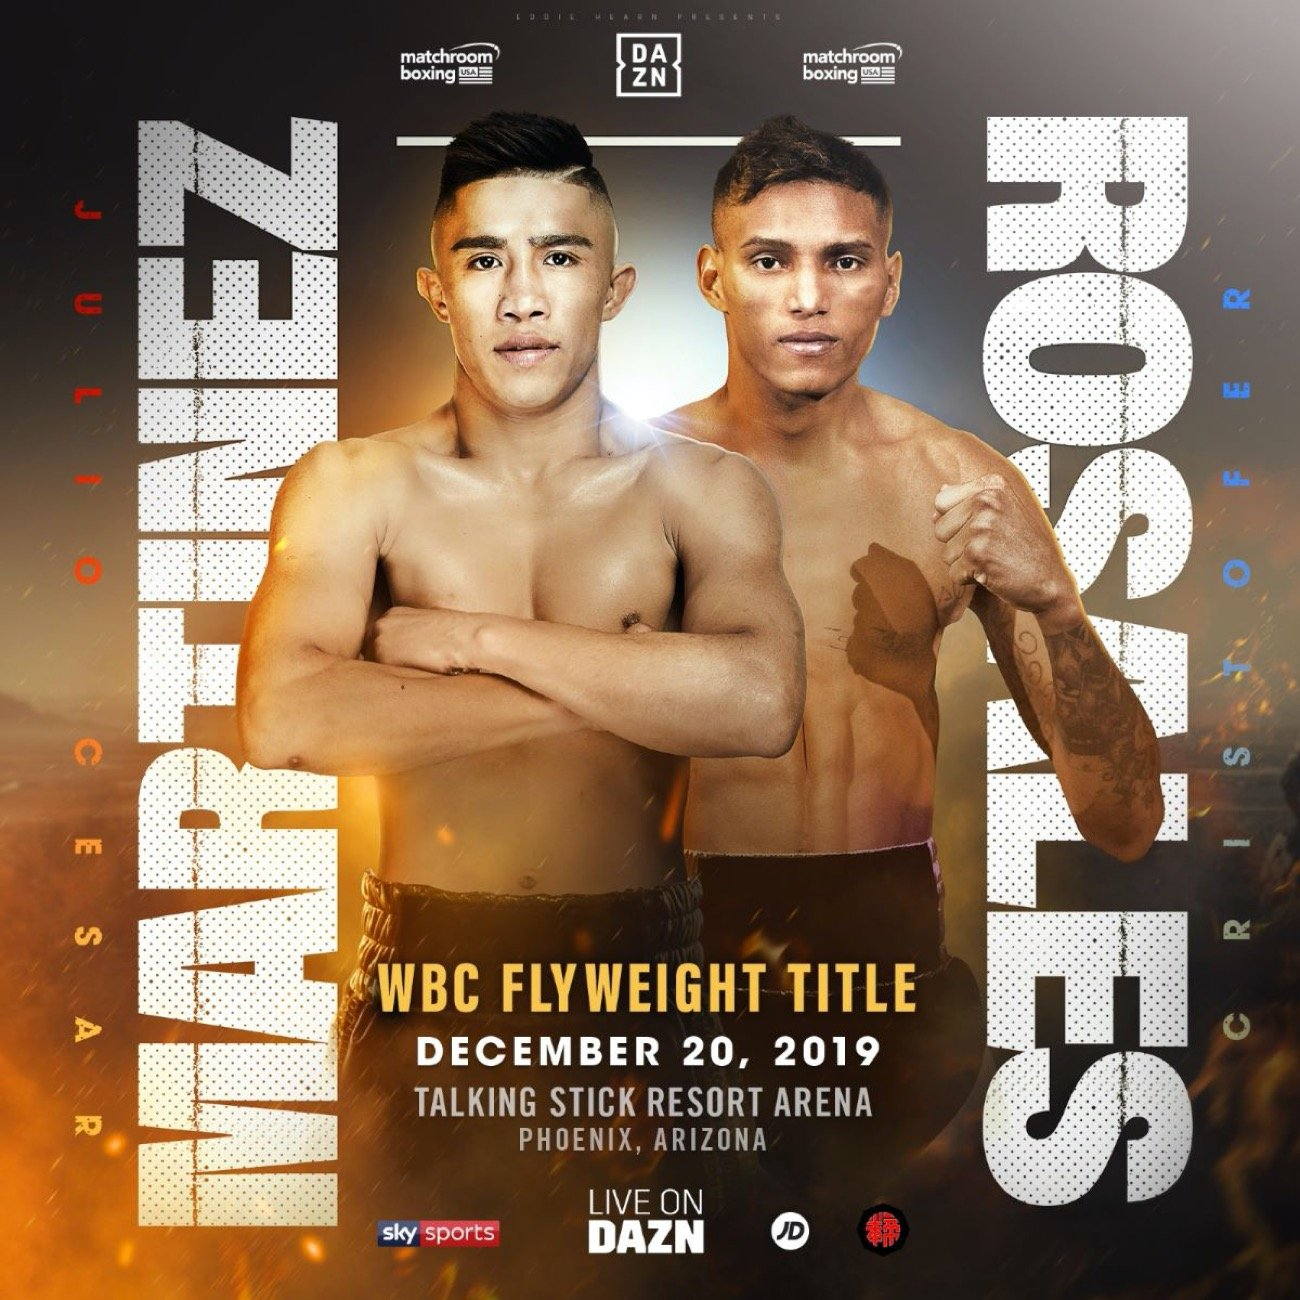 Cristofer Rosales - Julio Cesar Martinez will challenge Cristofer Rosales for the vacant WBC World Flyweight title at the Talking Stick Resort Arena in Phoenix, Arizona on Friday December 20, live on DAZN in the US and on Sky Sports in the UK on the undercard of the Super-Middleweight blockbuster between Daniel Jacobs and Julio Cesar Chavez Jr.